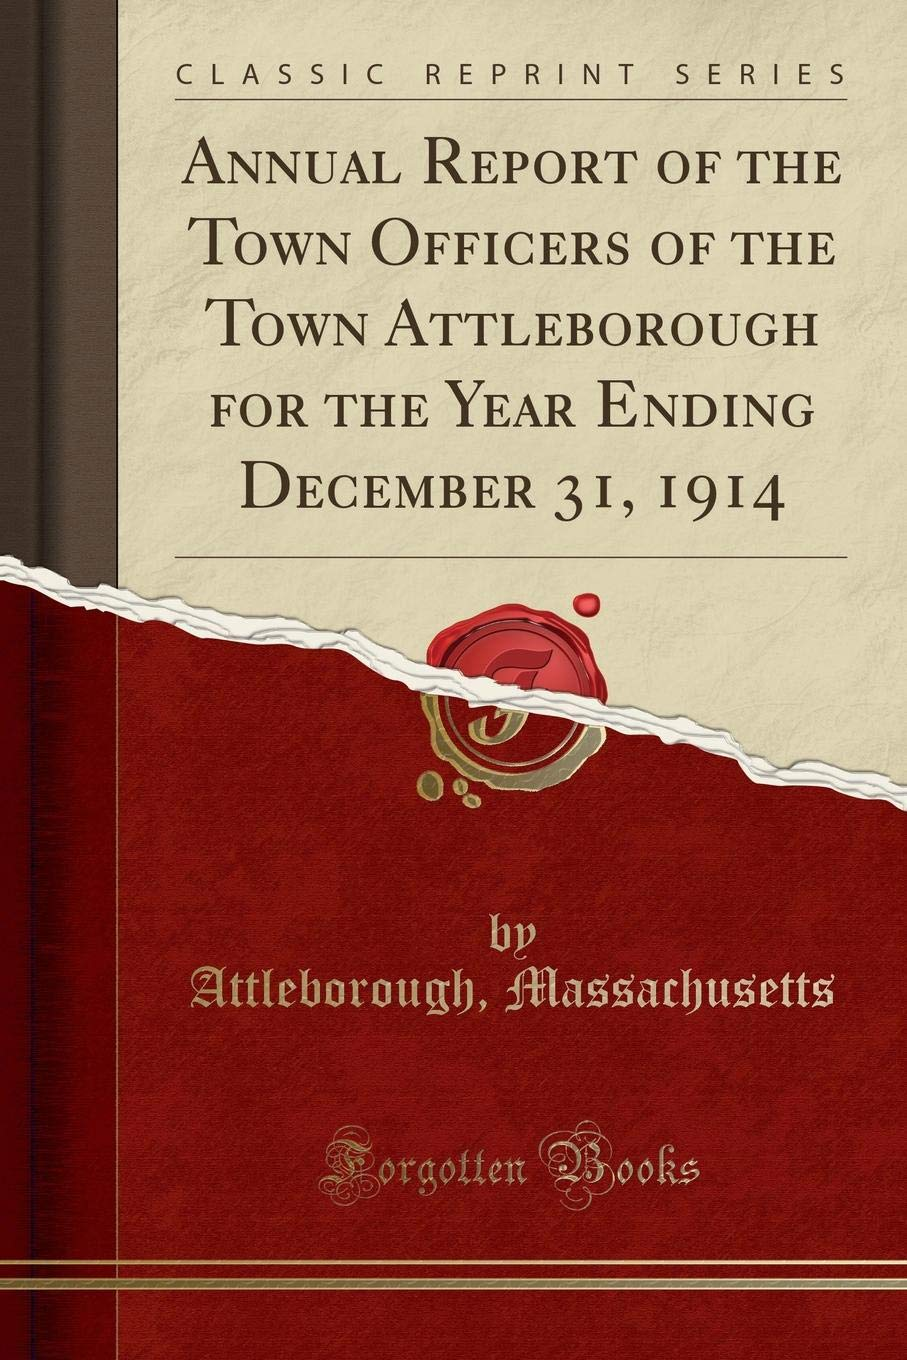 Download Annual Report of the Town Officers of the Town Attleborough for the Year Ending December 31, 1914 (Classic Reprint) ebook